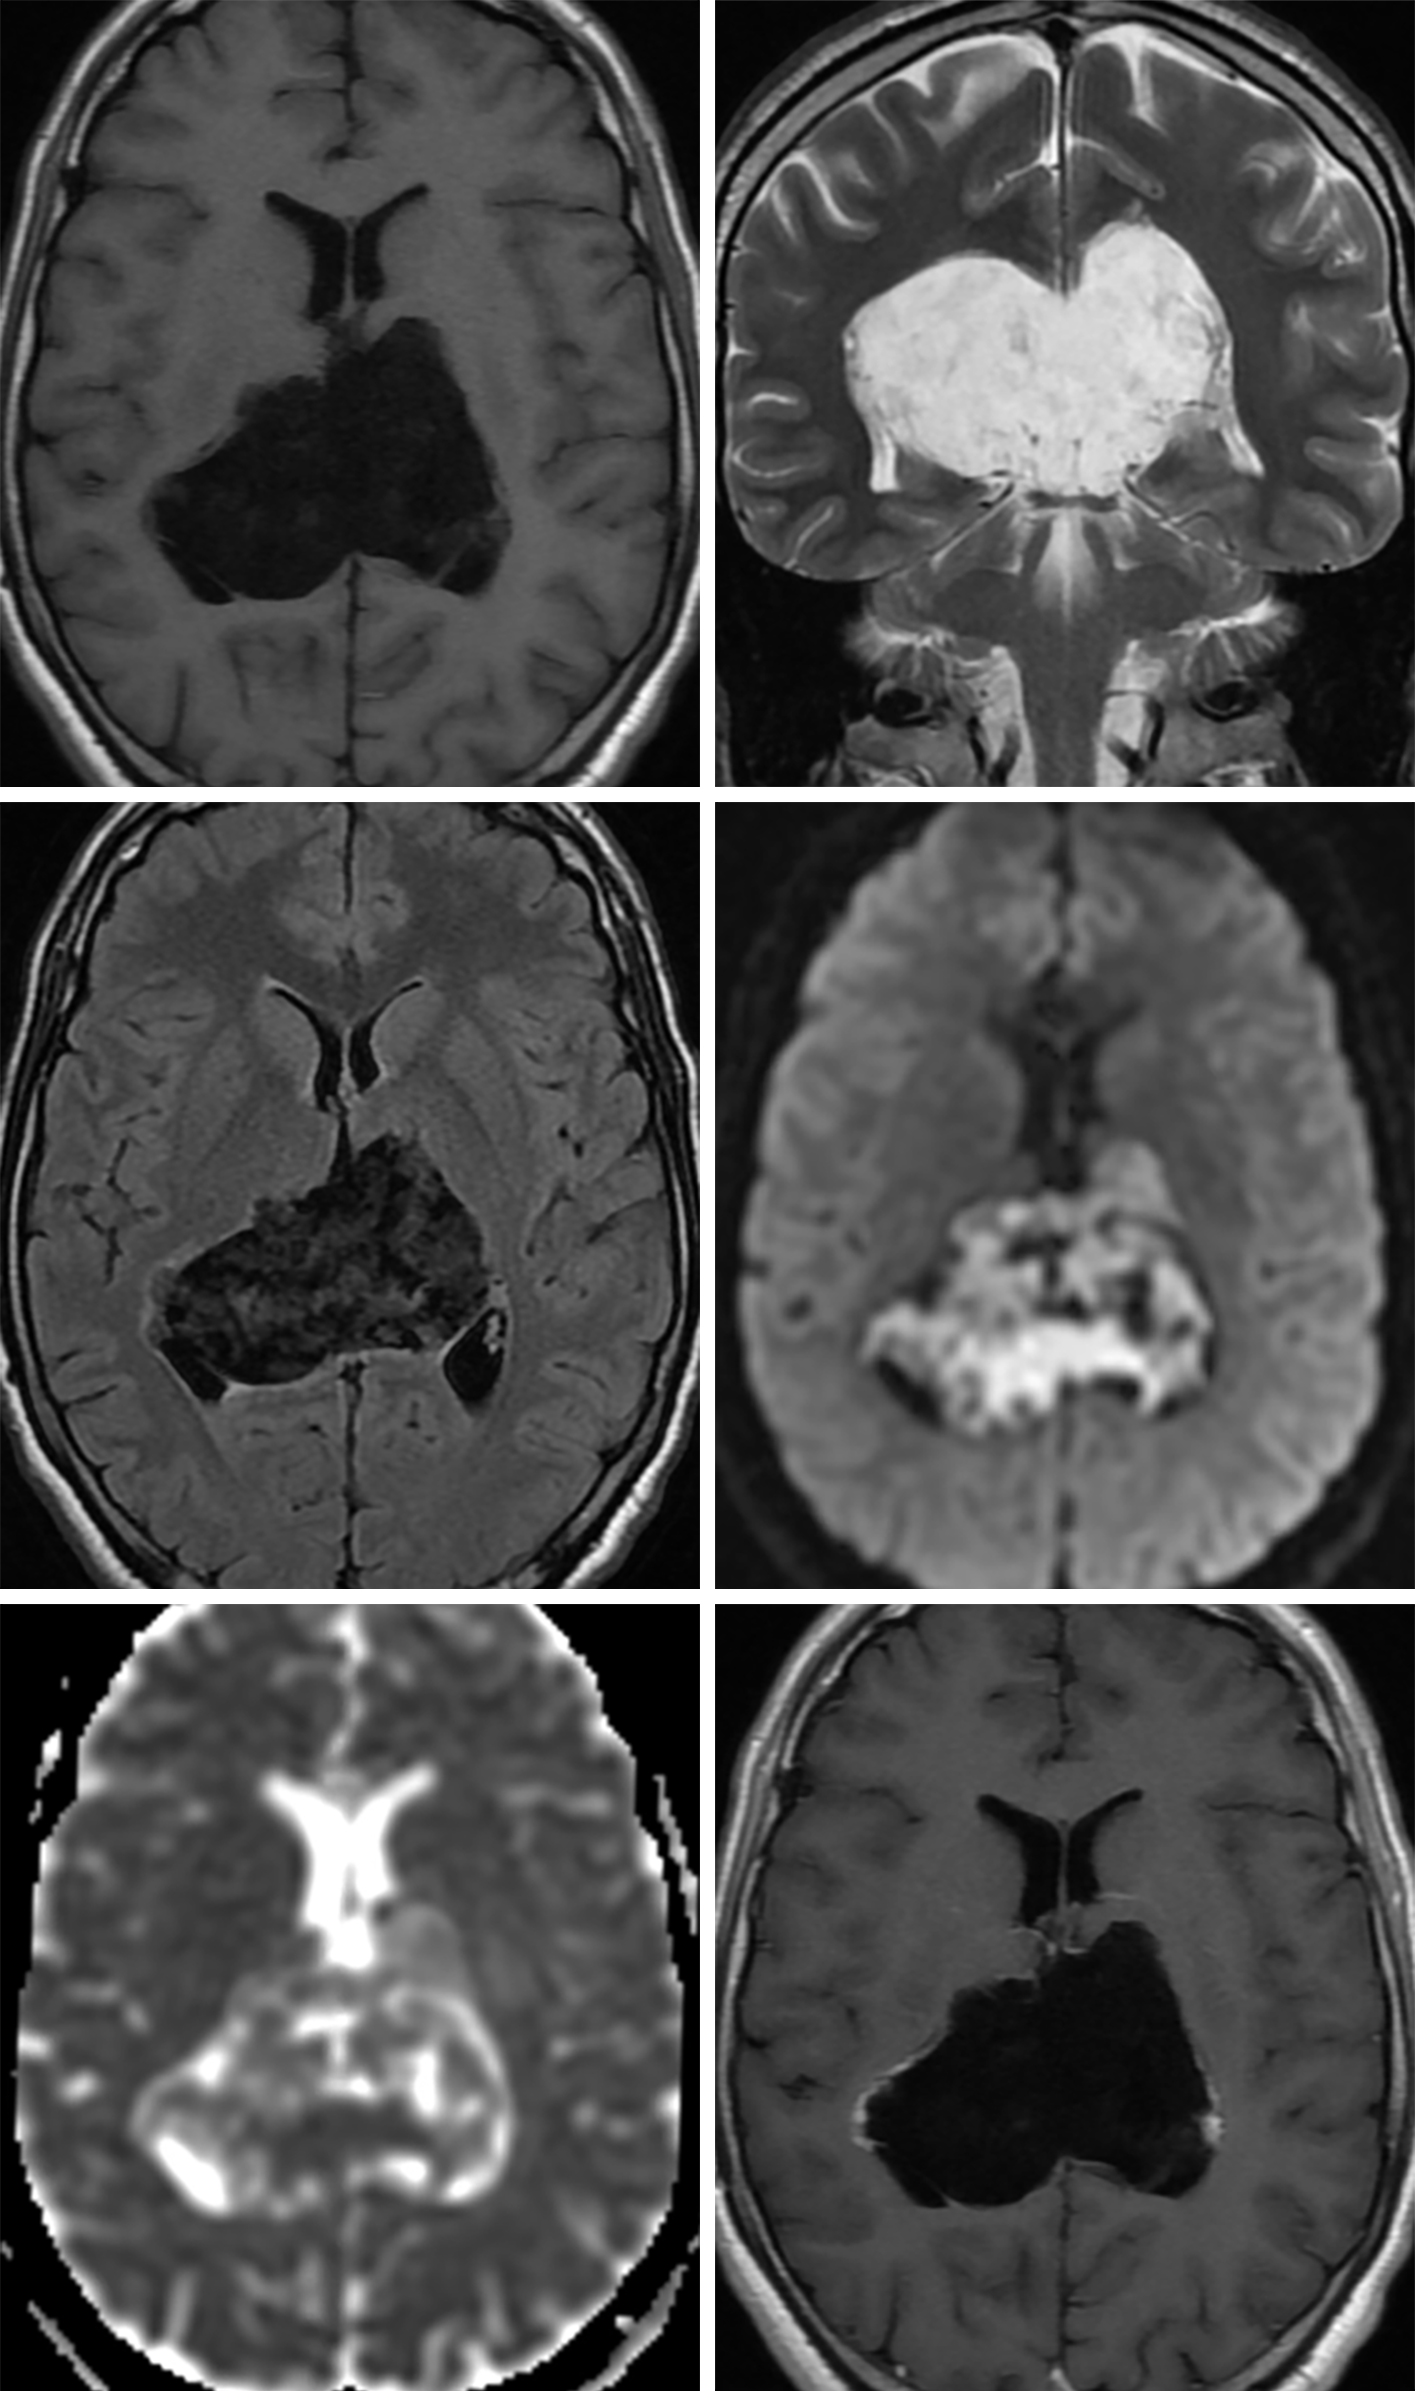 Figure 2: This large epidermoid cyst looks similar to CSF on T1-weighted (top left) and T2-weighted (top right) imaging, but its identity as a possible simple cyst should be questioned given the degree of heterogeneity that is often visible on FLAIR (middle left). Diffusion restriction visible as bright signal on DWI (middle right) and dark signal on ADC (bottom left) is the hallmark of epidermoid cysts and can greatly help to differentiate them from other simple cysts, such as arachnoid cysts. (Bottom Right) This epidermoid cyst has a small amount of nodular contrast enhancement in the periphery, a finding that is present only rarely.